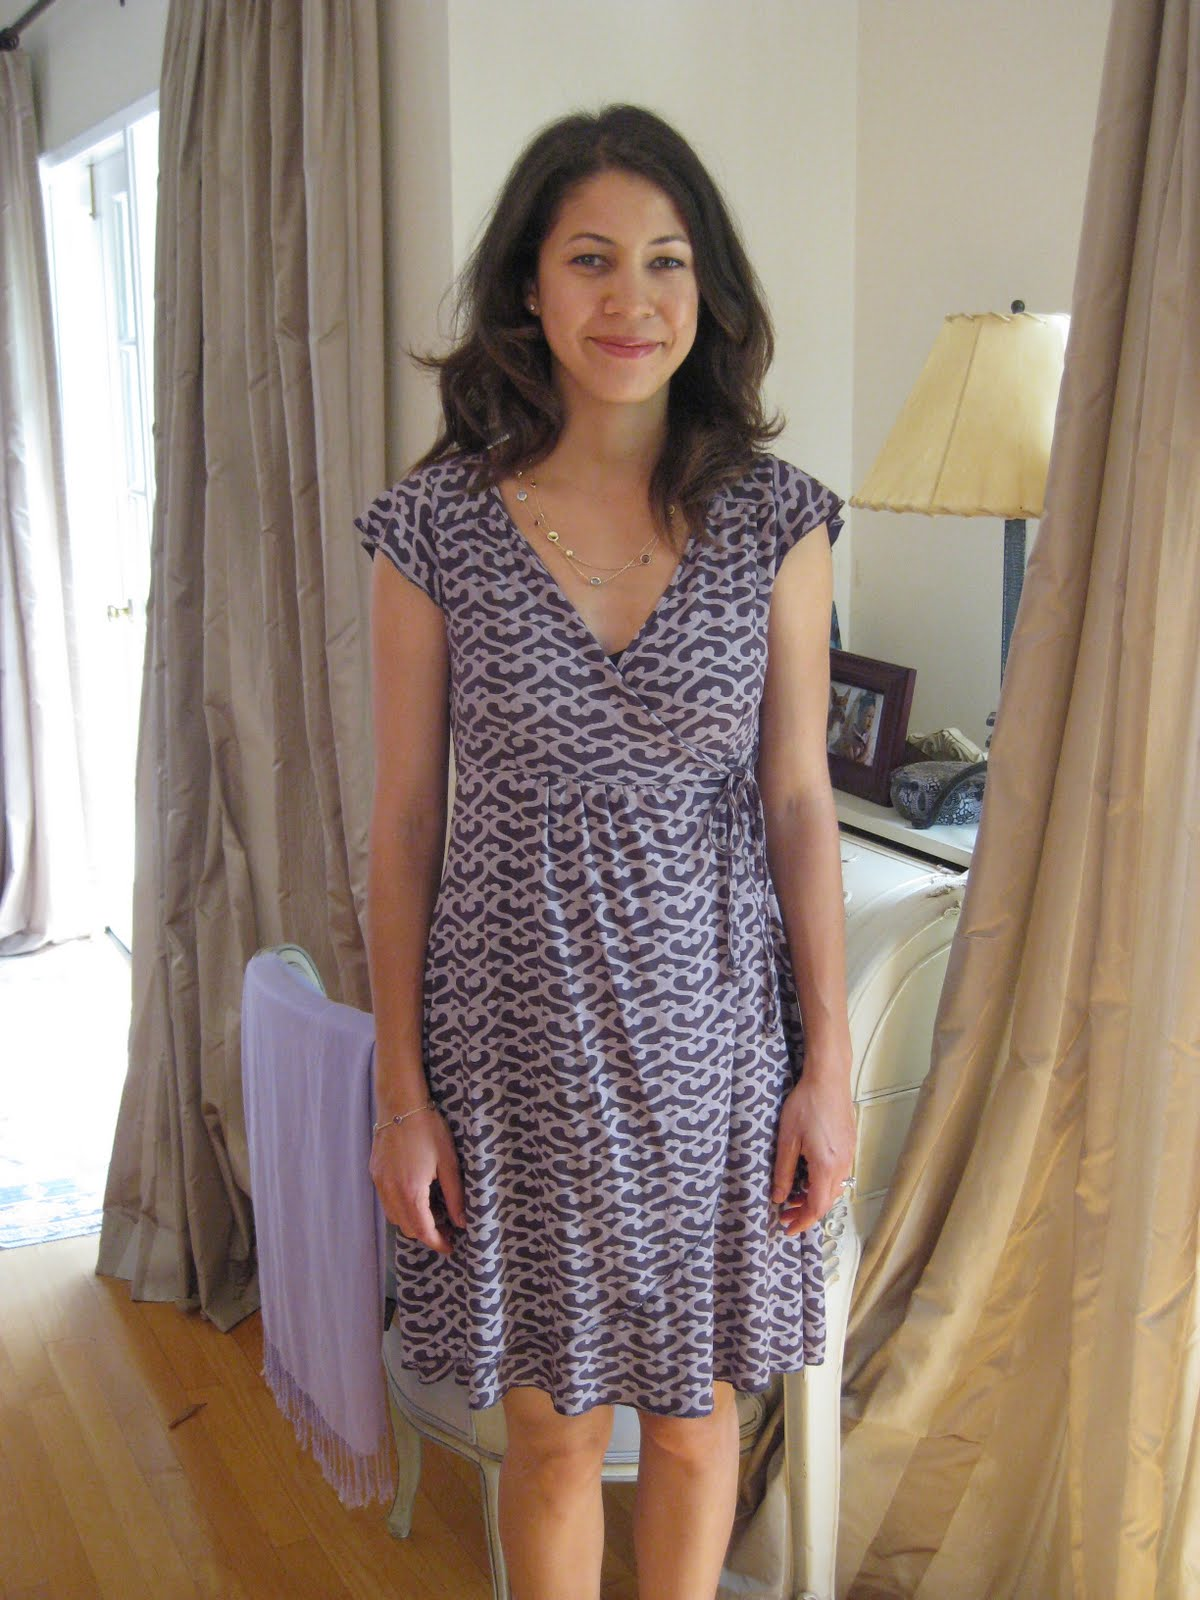 df0781578ec Fresh Produce Clothing- A Review - The Daily Connoisseur